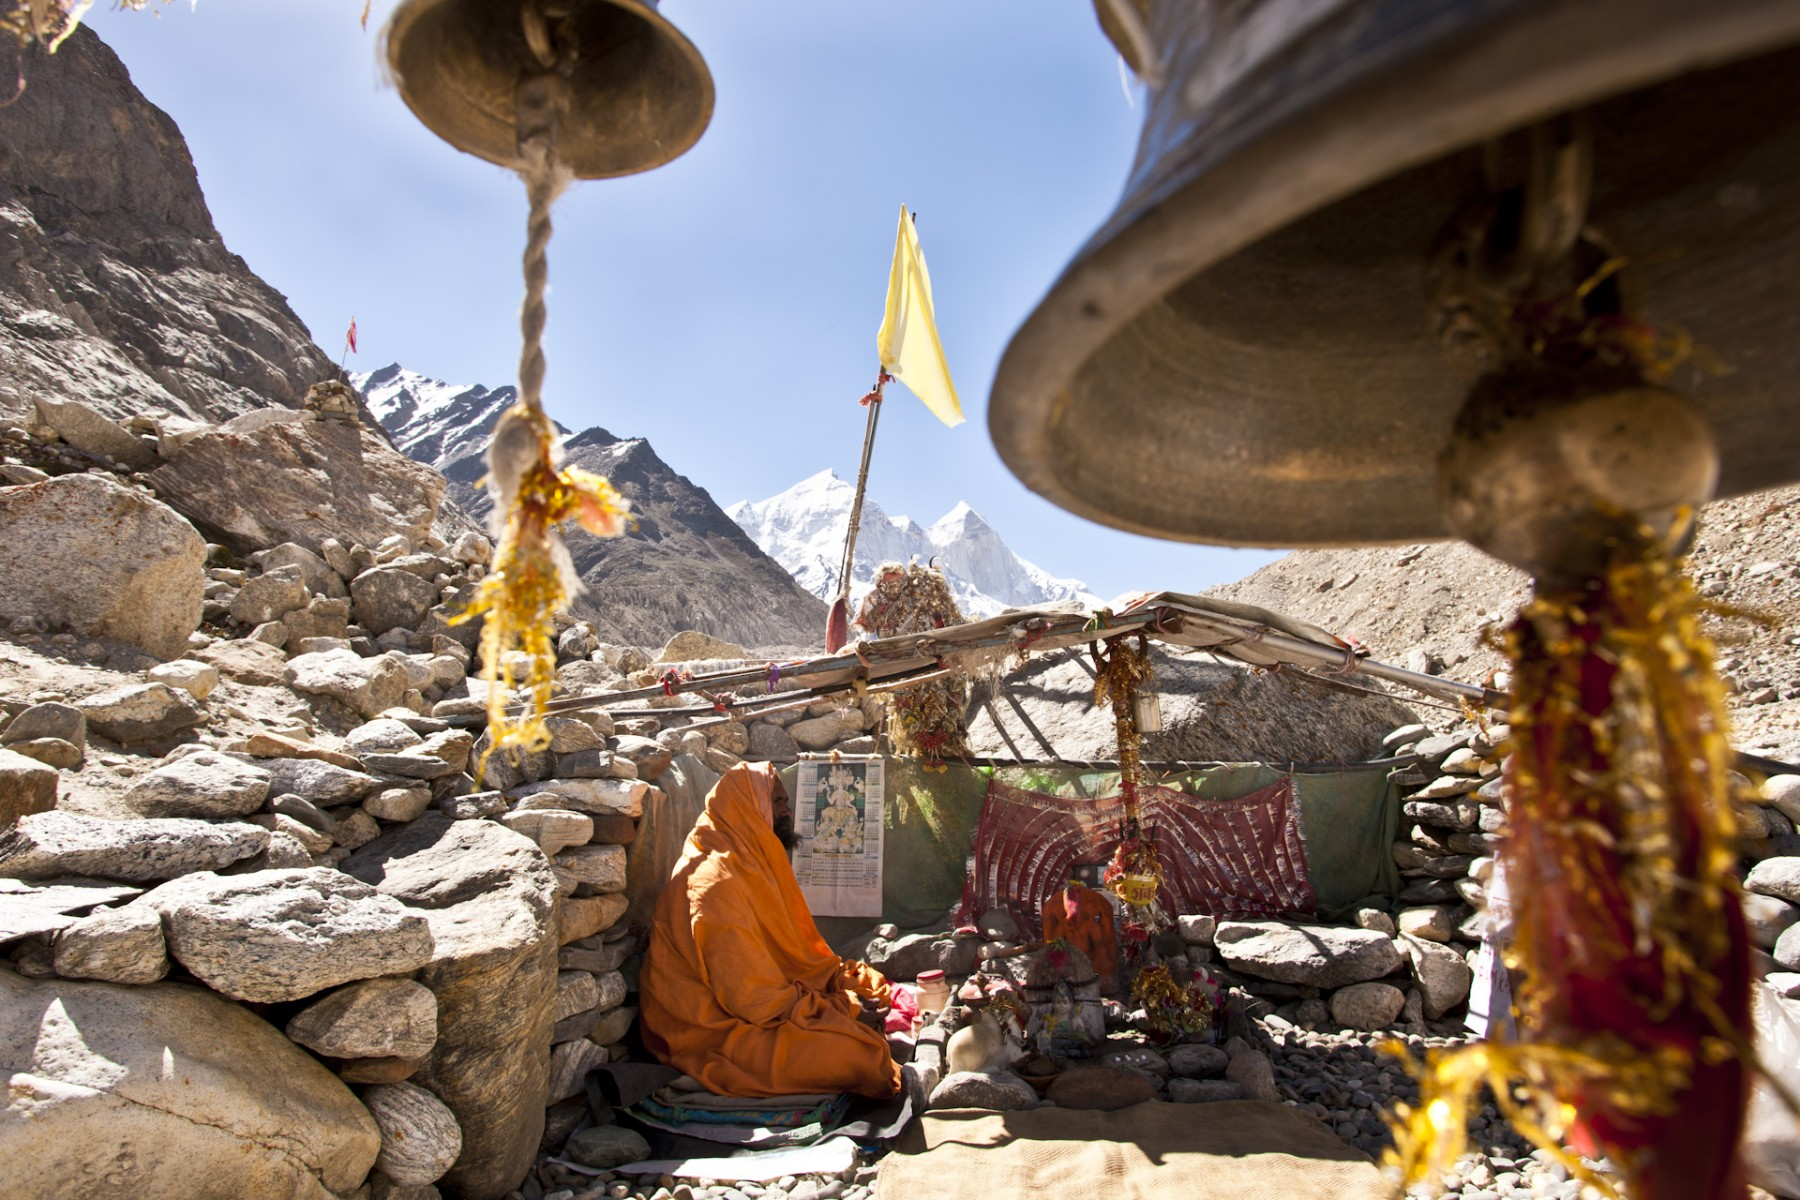 Nirmal Das attends to the make-shift temple which is just a few hundred yards from Gaumukh every day during the summer months. His routine began in 1988.